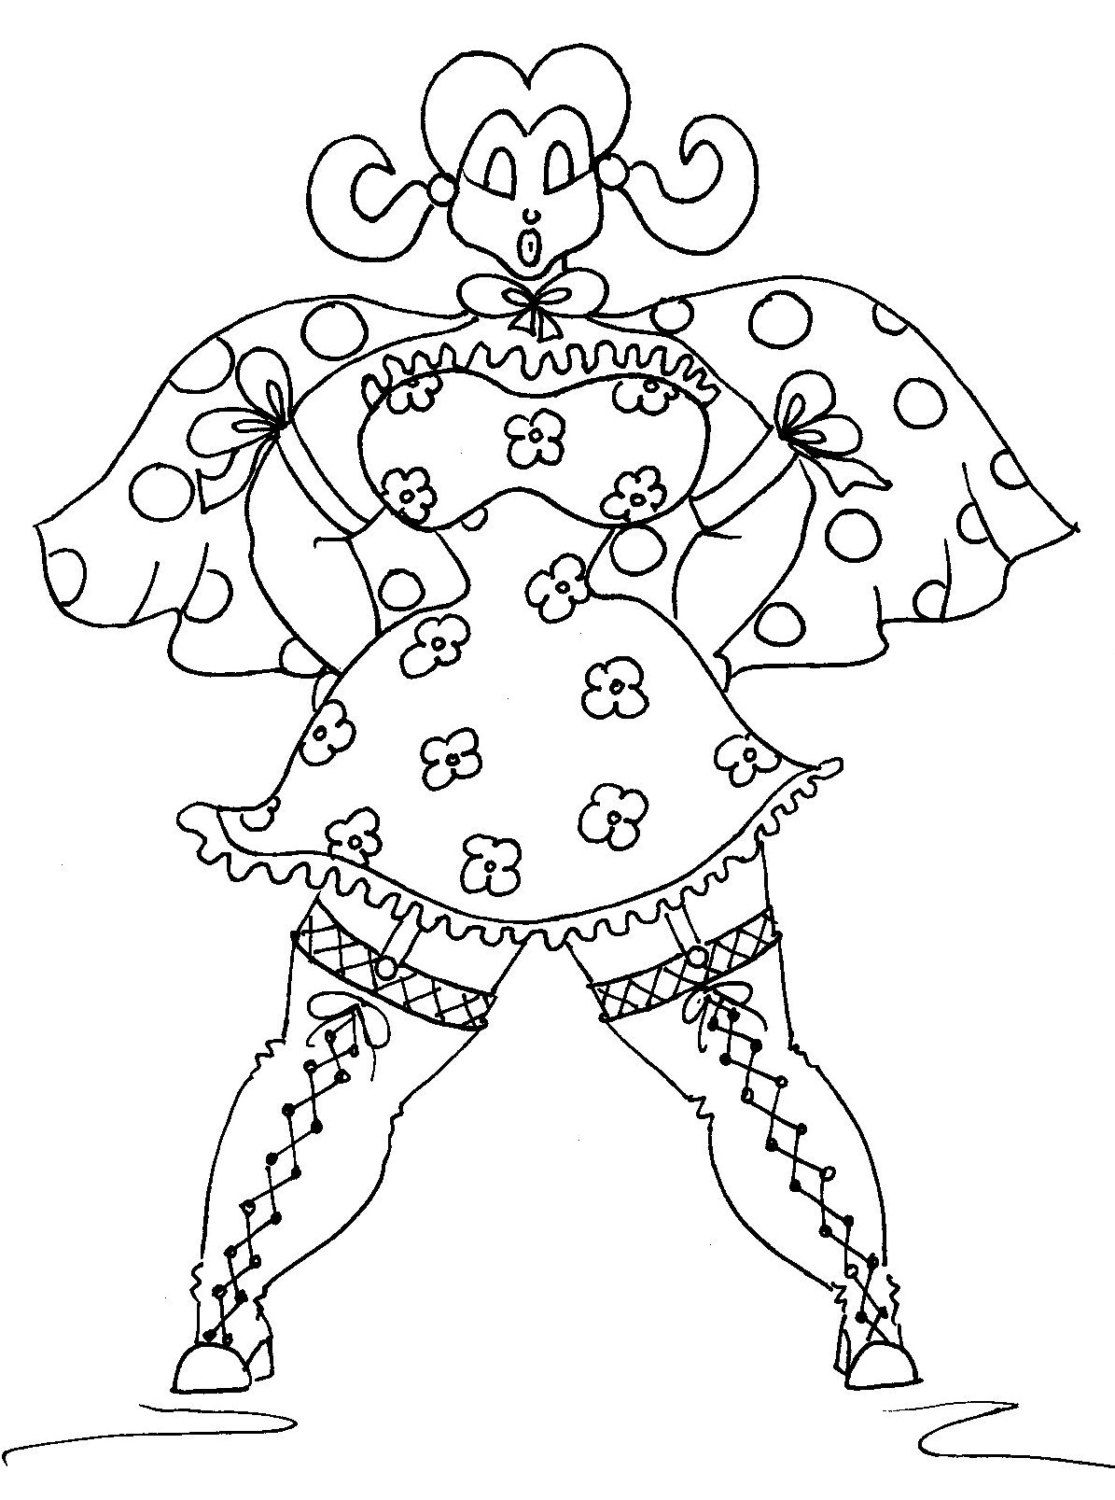 50+ Printable cartoon coloring pages for adults ideas in 2021